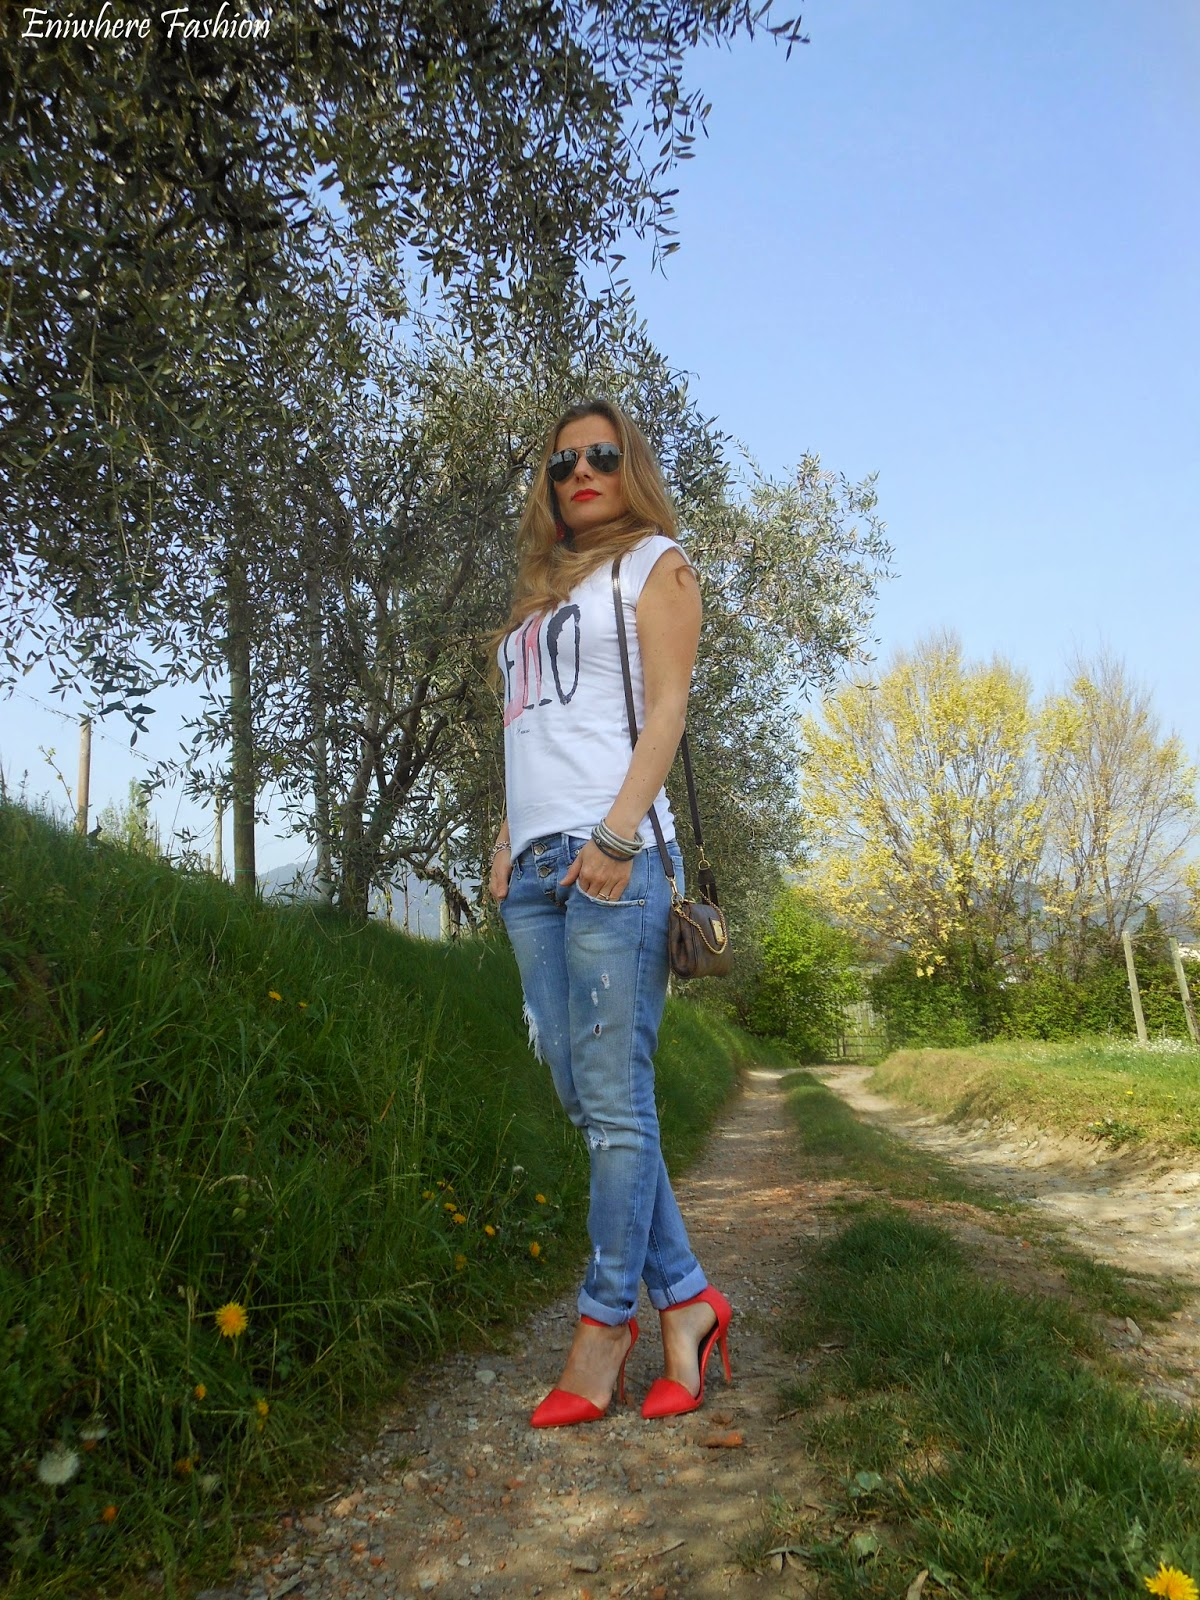 Eniwhere Fashion - Franciacorta outfit